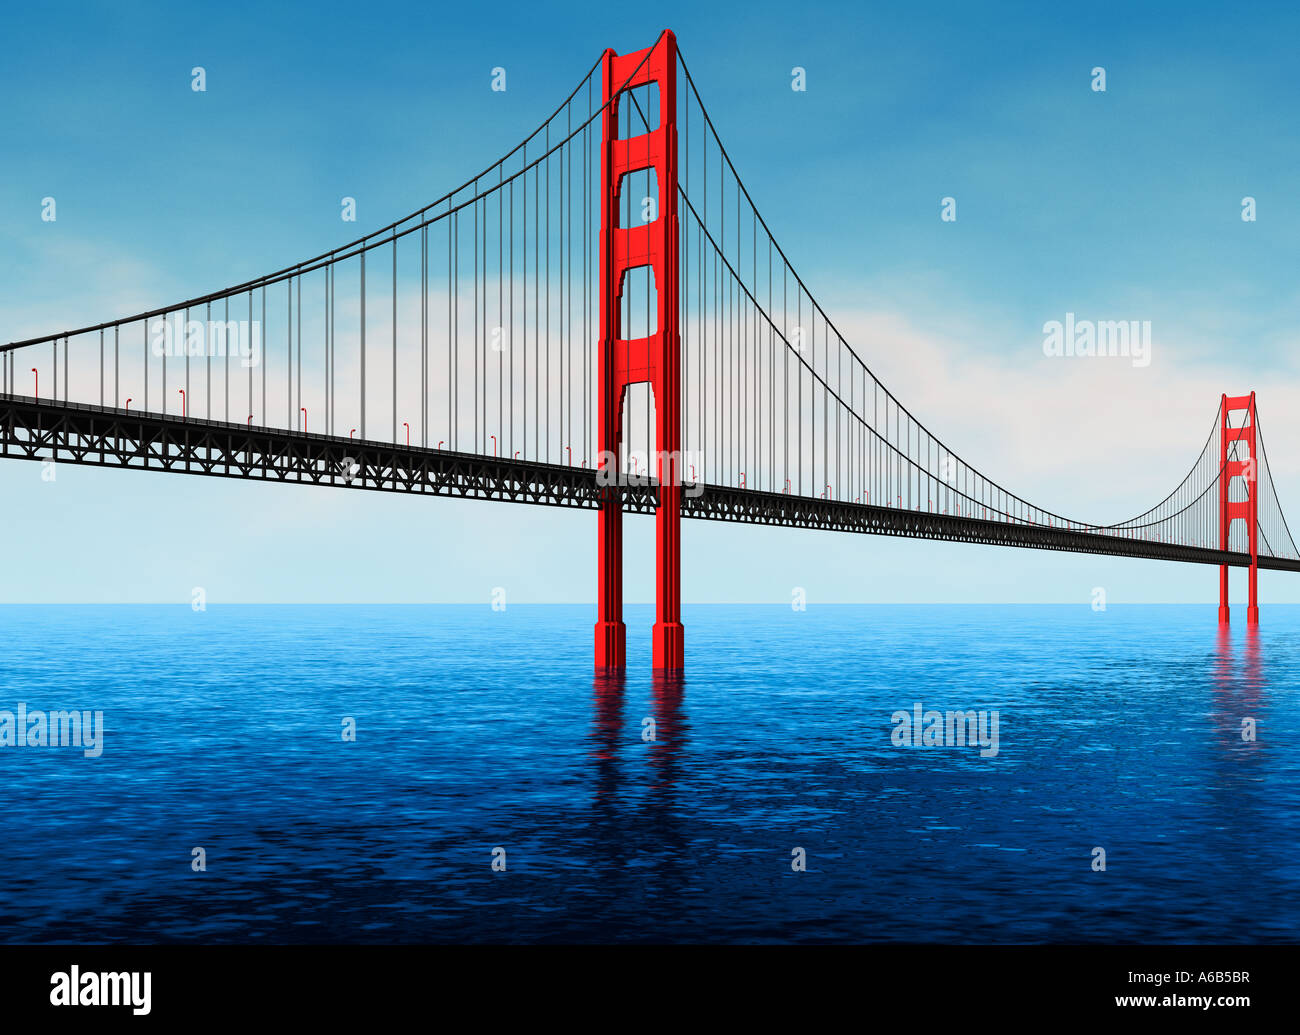 Golden Gate Bridge San Francisco USA United States of America - Stock Image